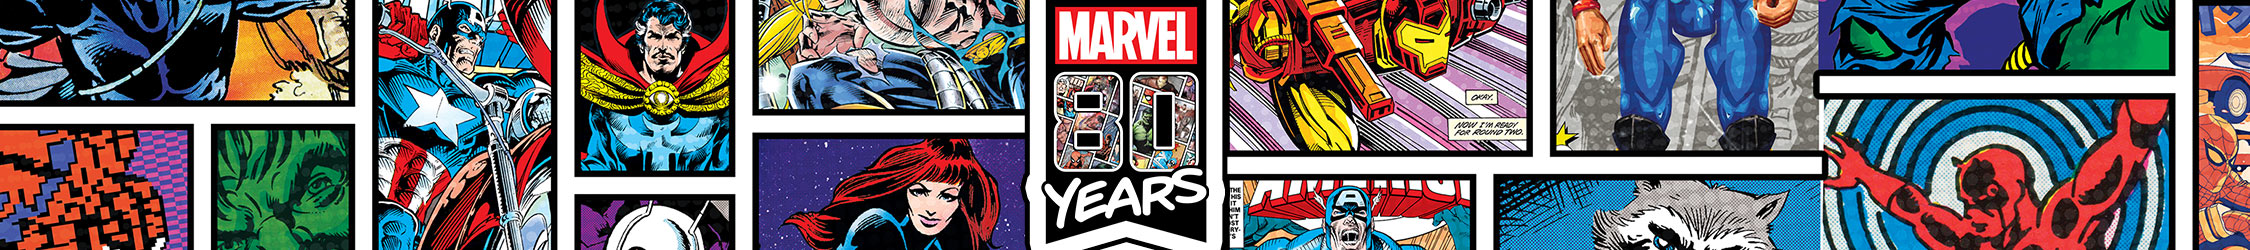 Marvel Shop 80th Anniversary